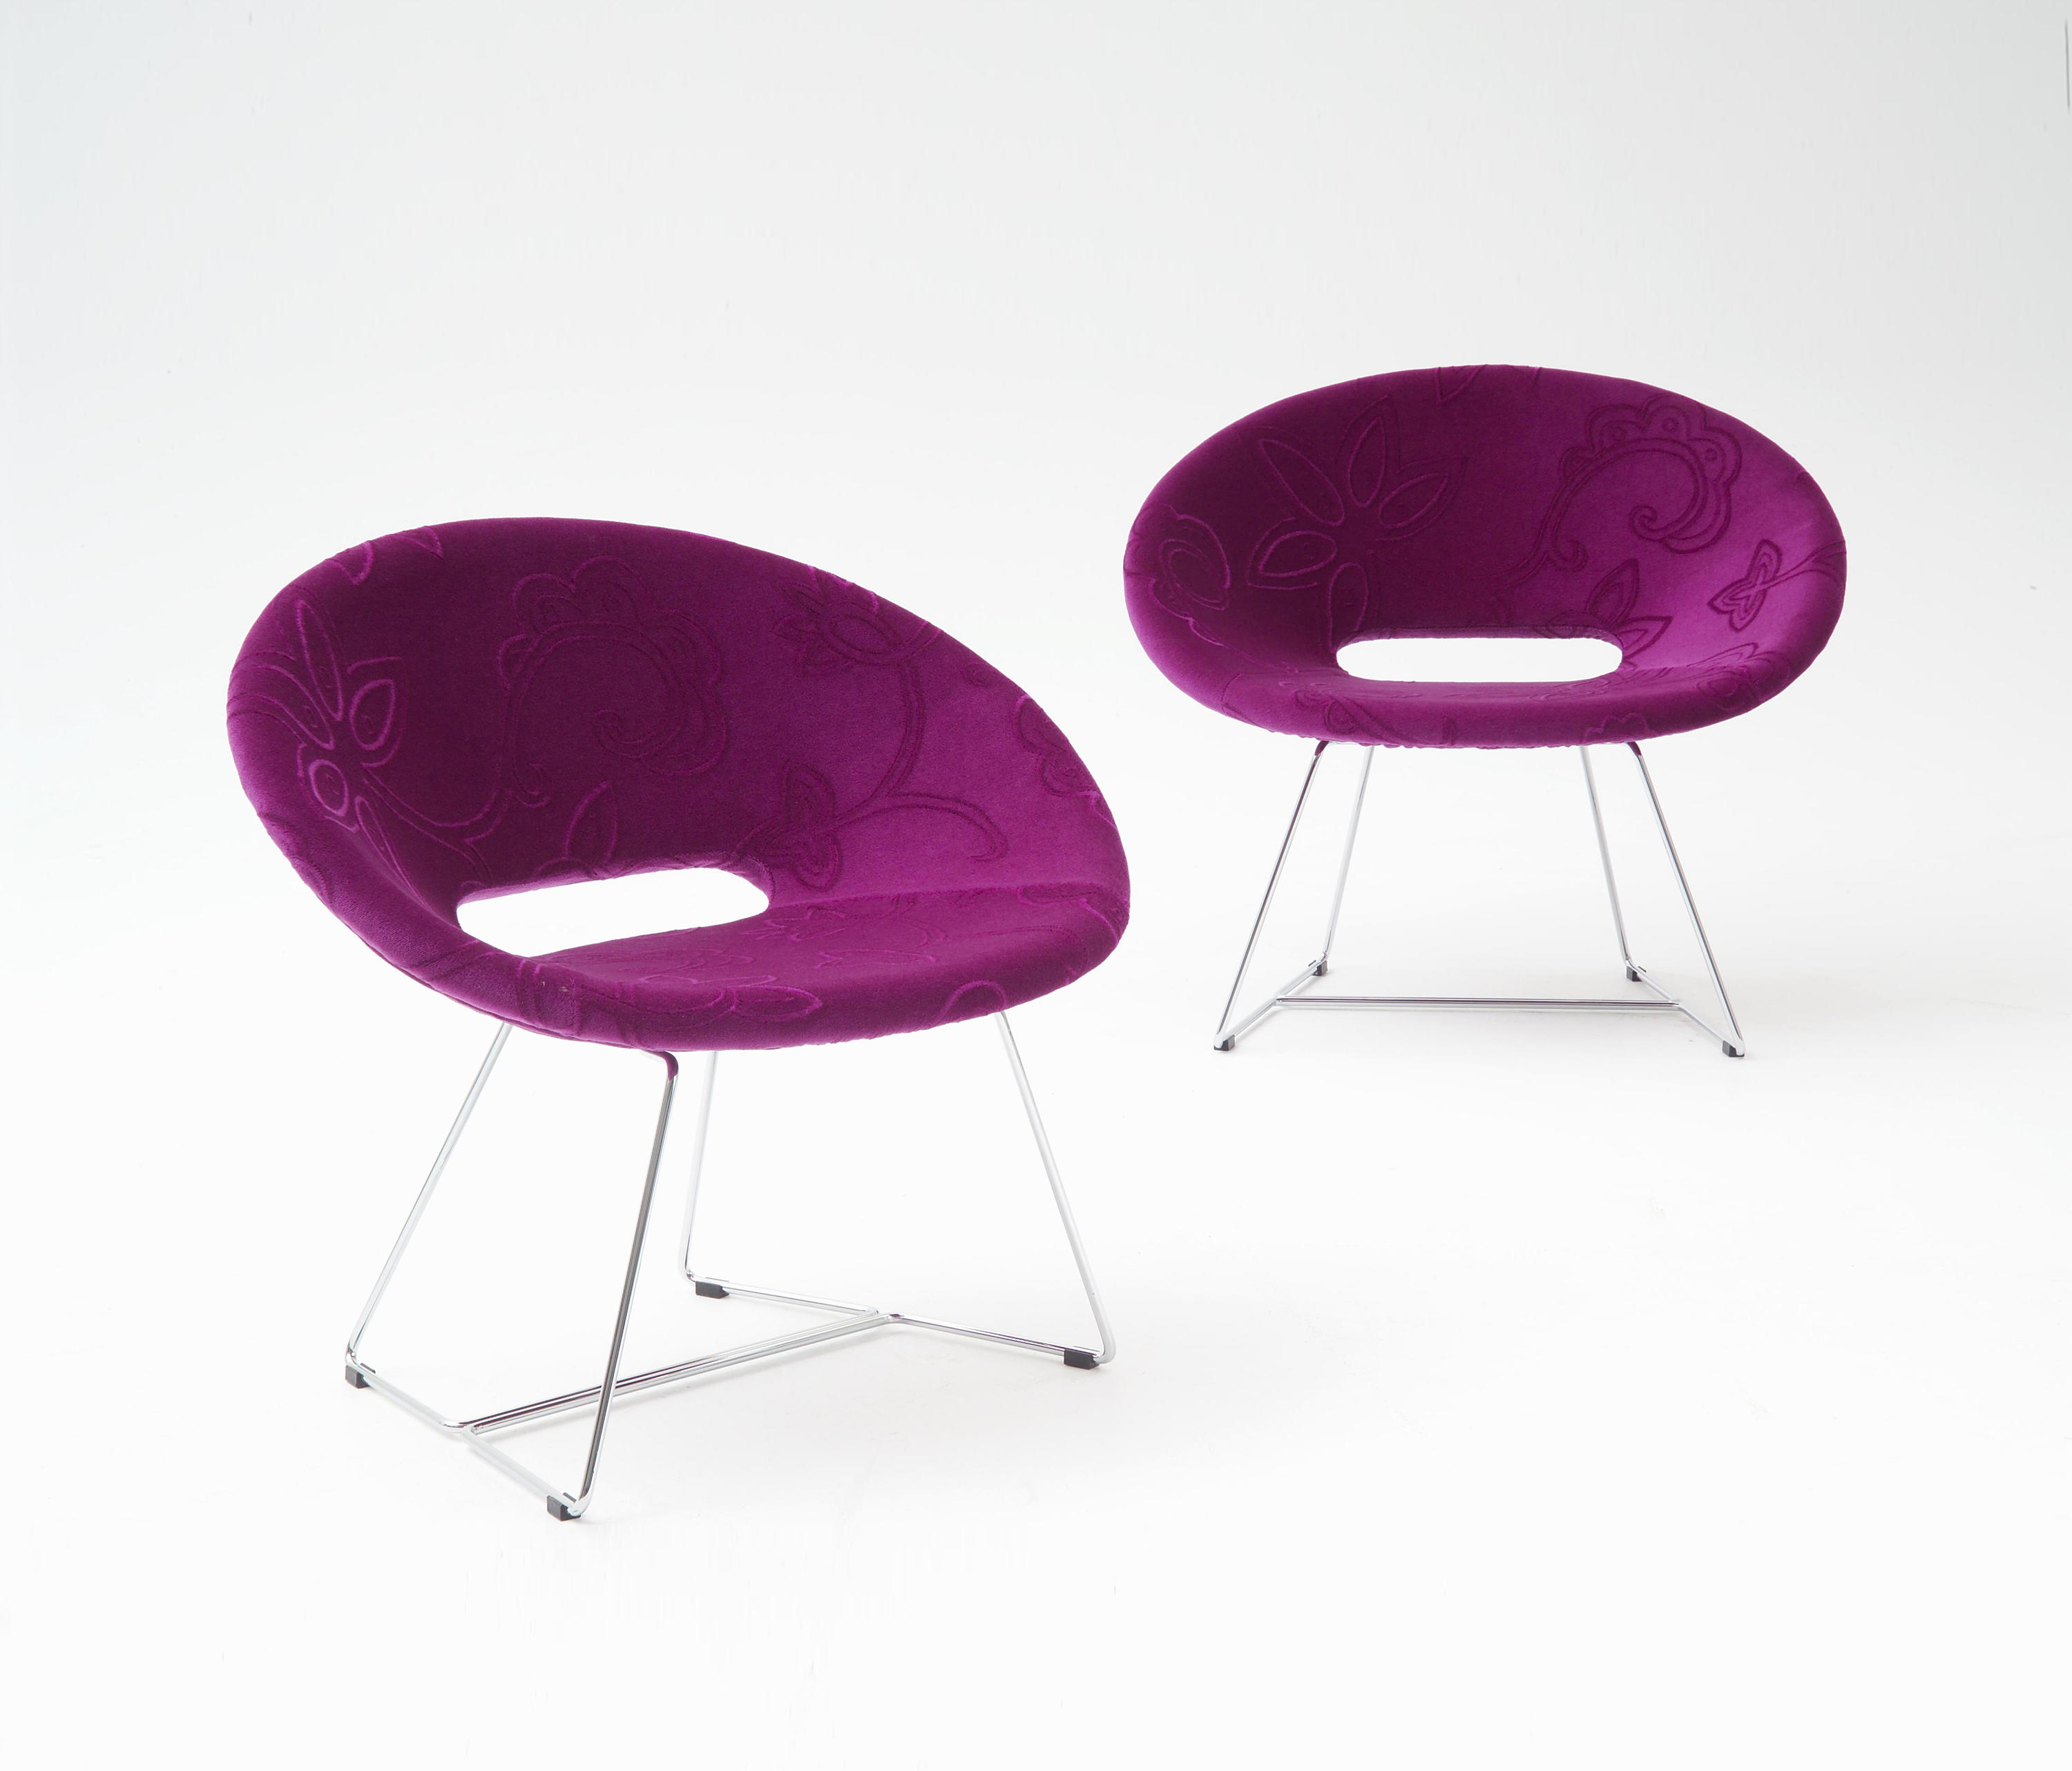 Cone Armchair By Nielaus | Armchairs Cone Armchair By Nielaus | Armchairs  ...